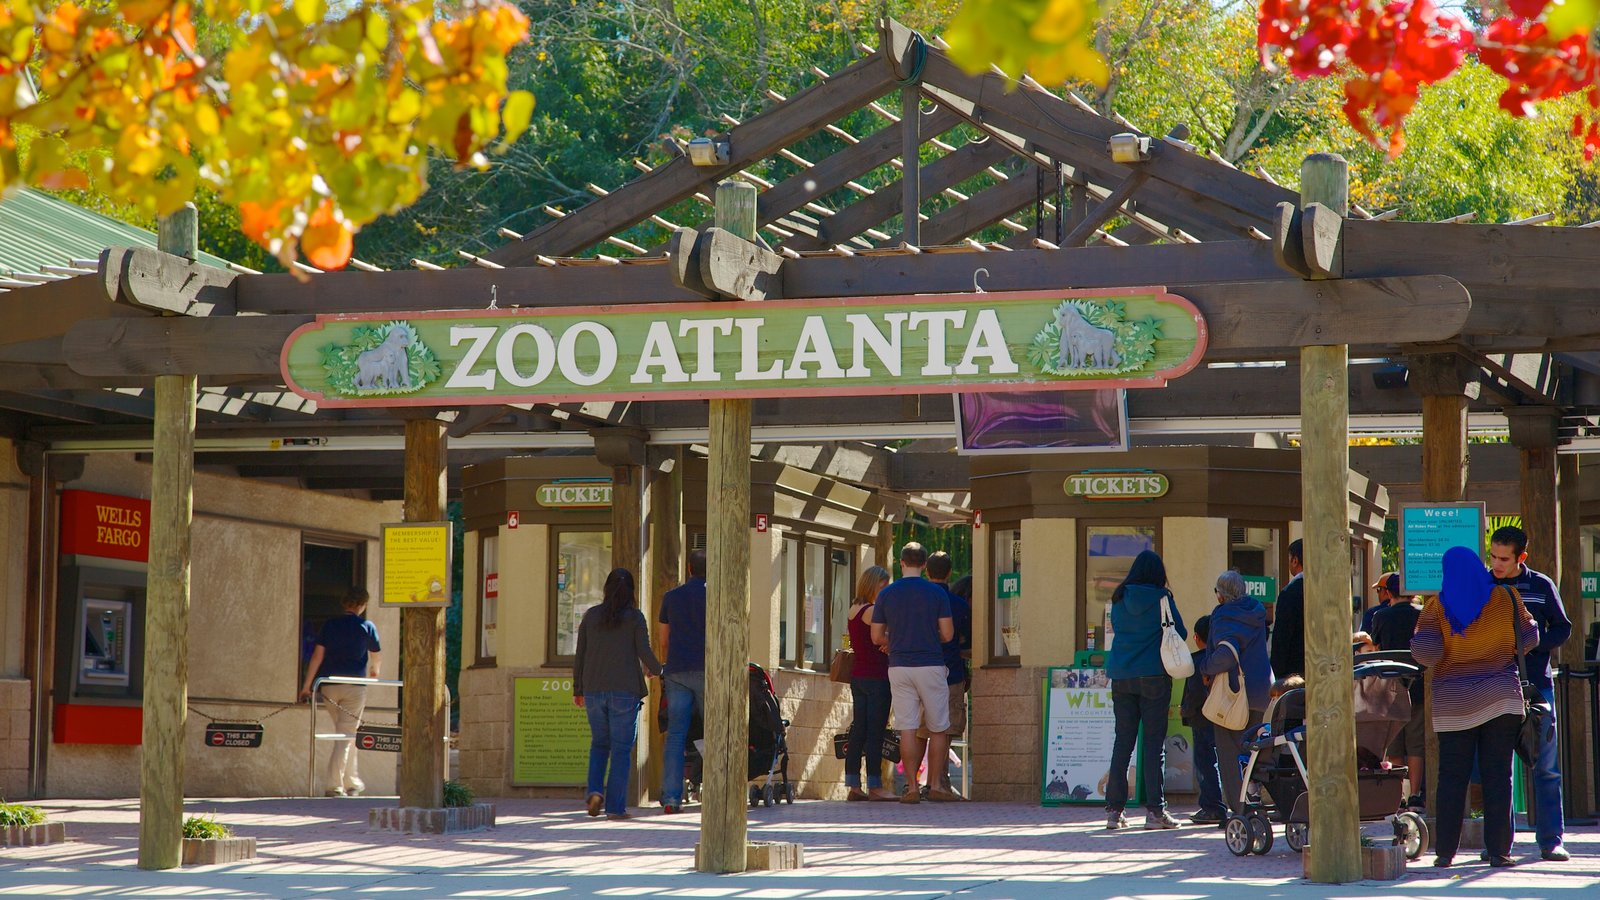 Zoo Atlanta showing zoo animals and signage as well as a large group of people